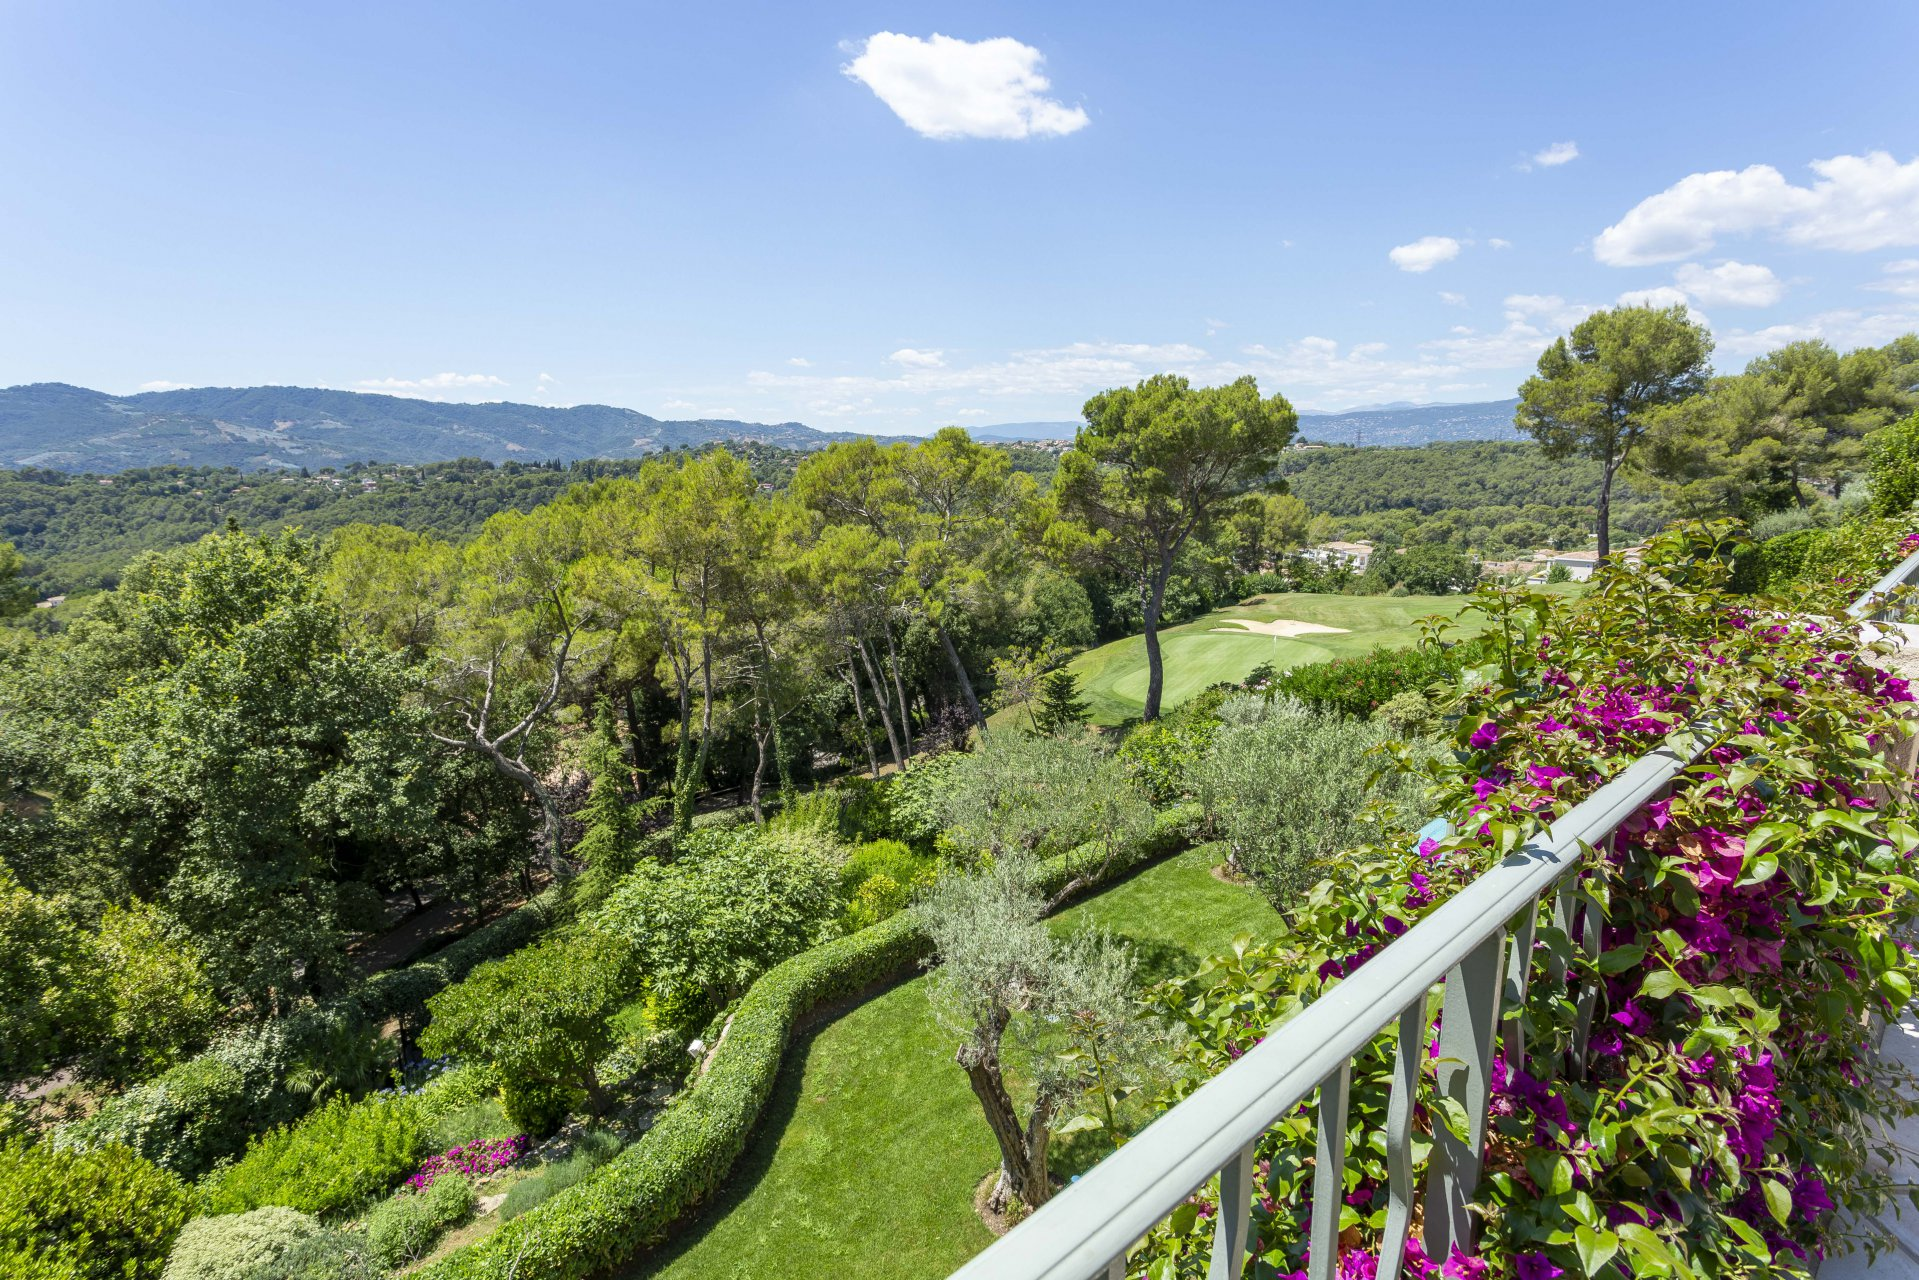 MOUGINS - IN THE MIDST OF A FAMOUS GOLF